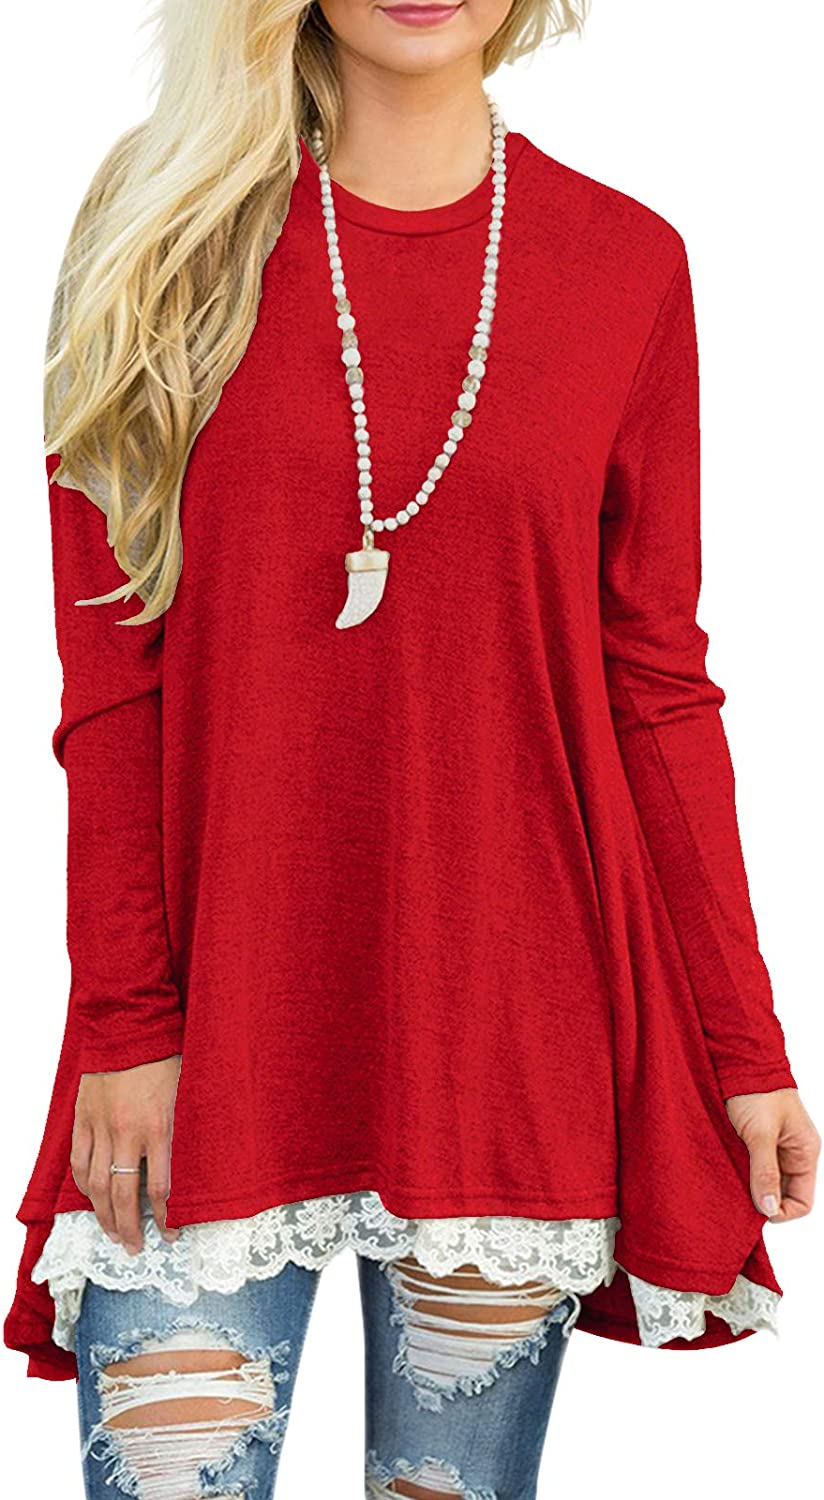 Sanifer Women Lace Long Sleeve Tunic Top Blouse